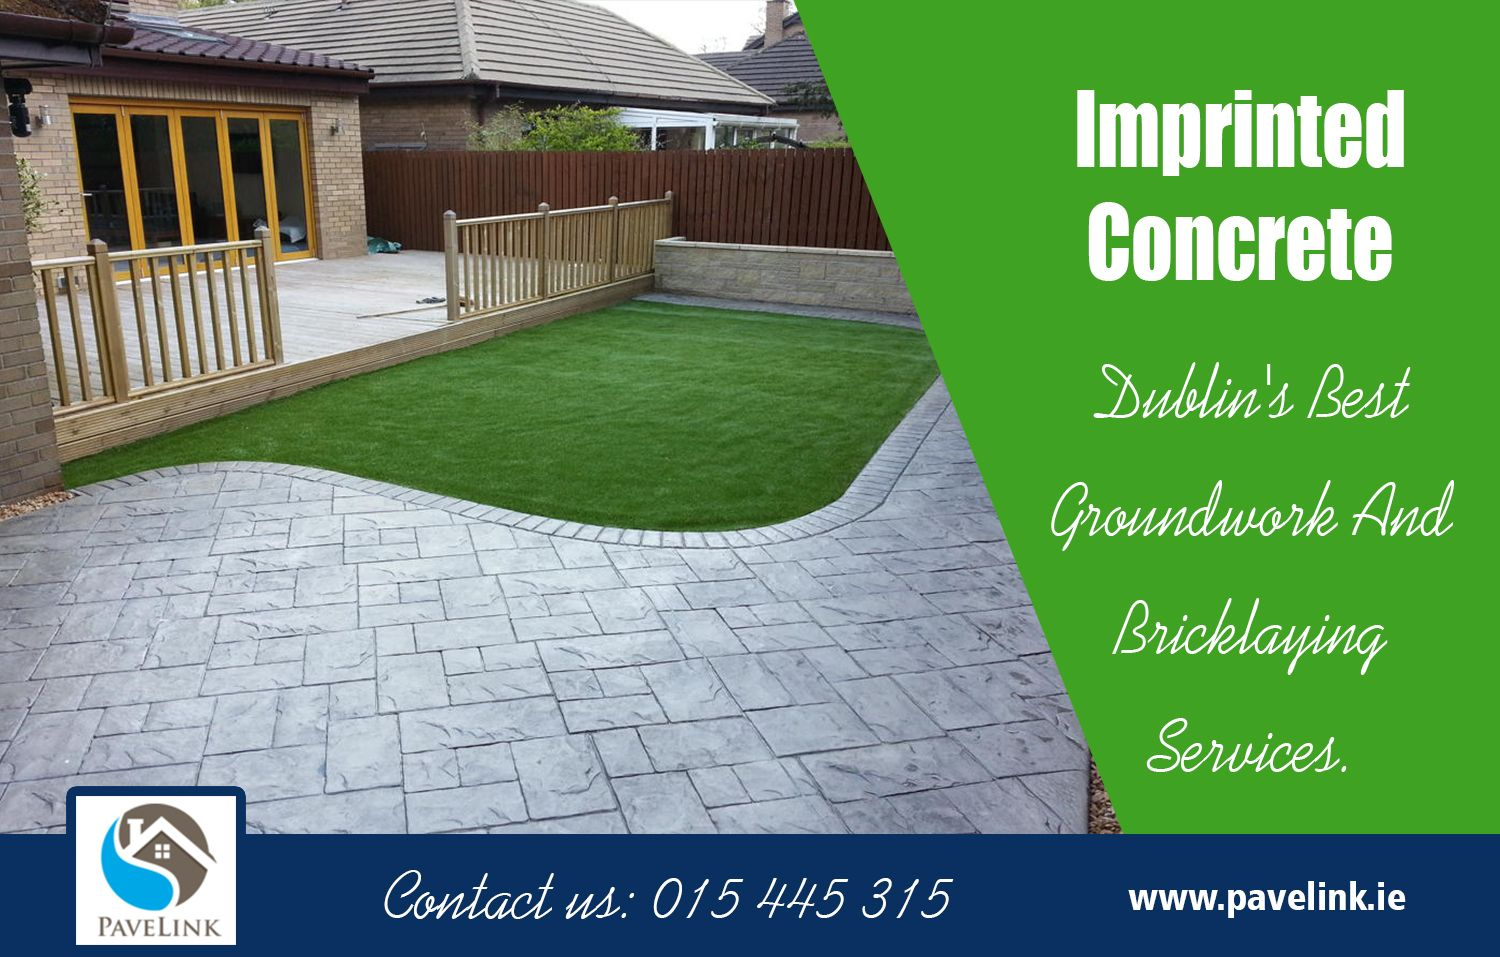 The area of freshly poured Concrete Driveways Dublin to